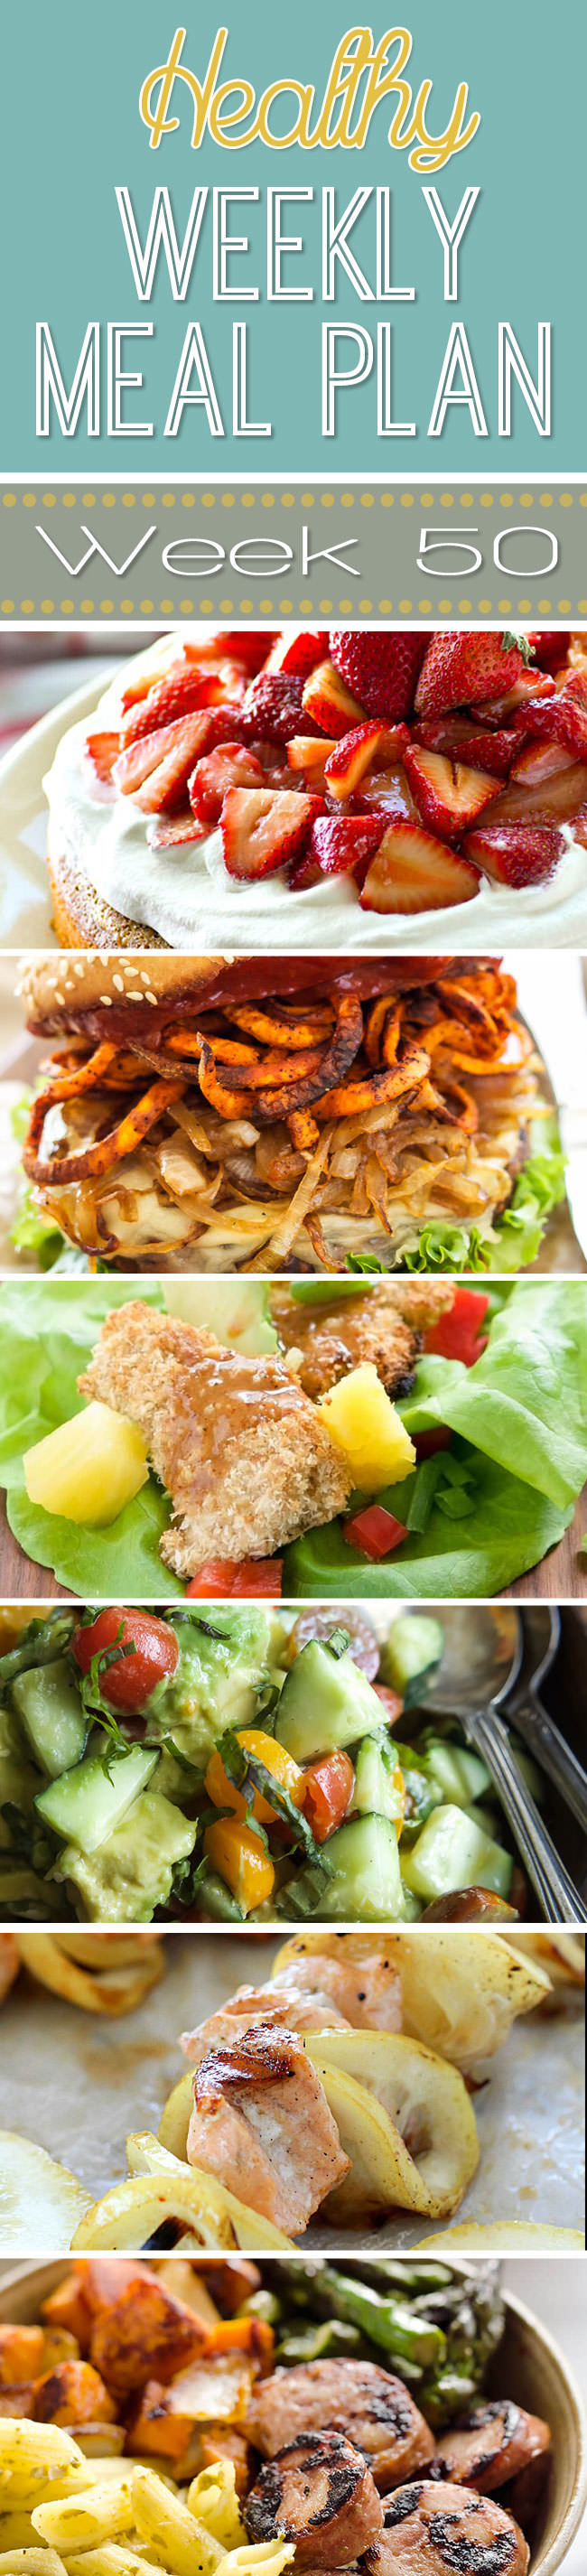 Healthy-Meal-Plan-Week-50-Vertical-Collage